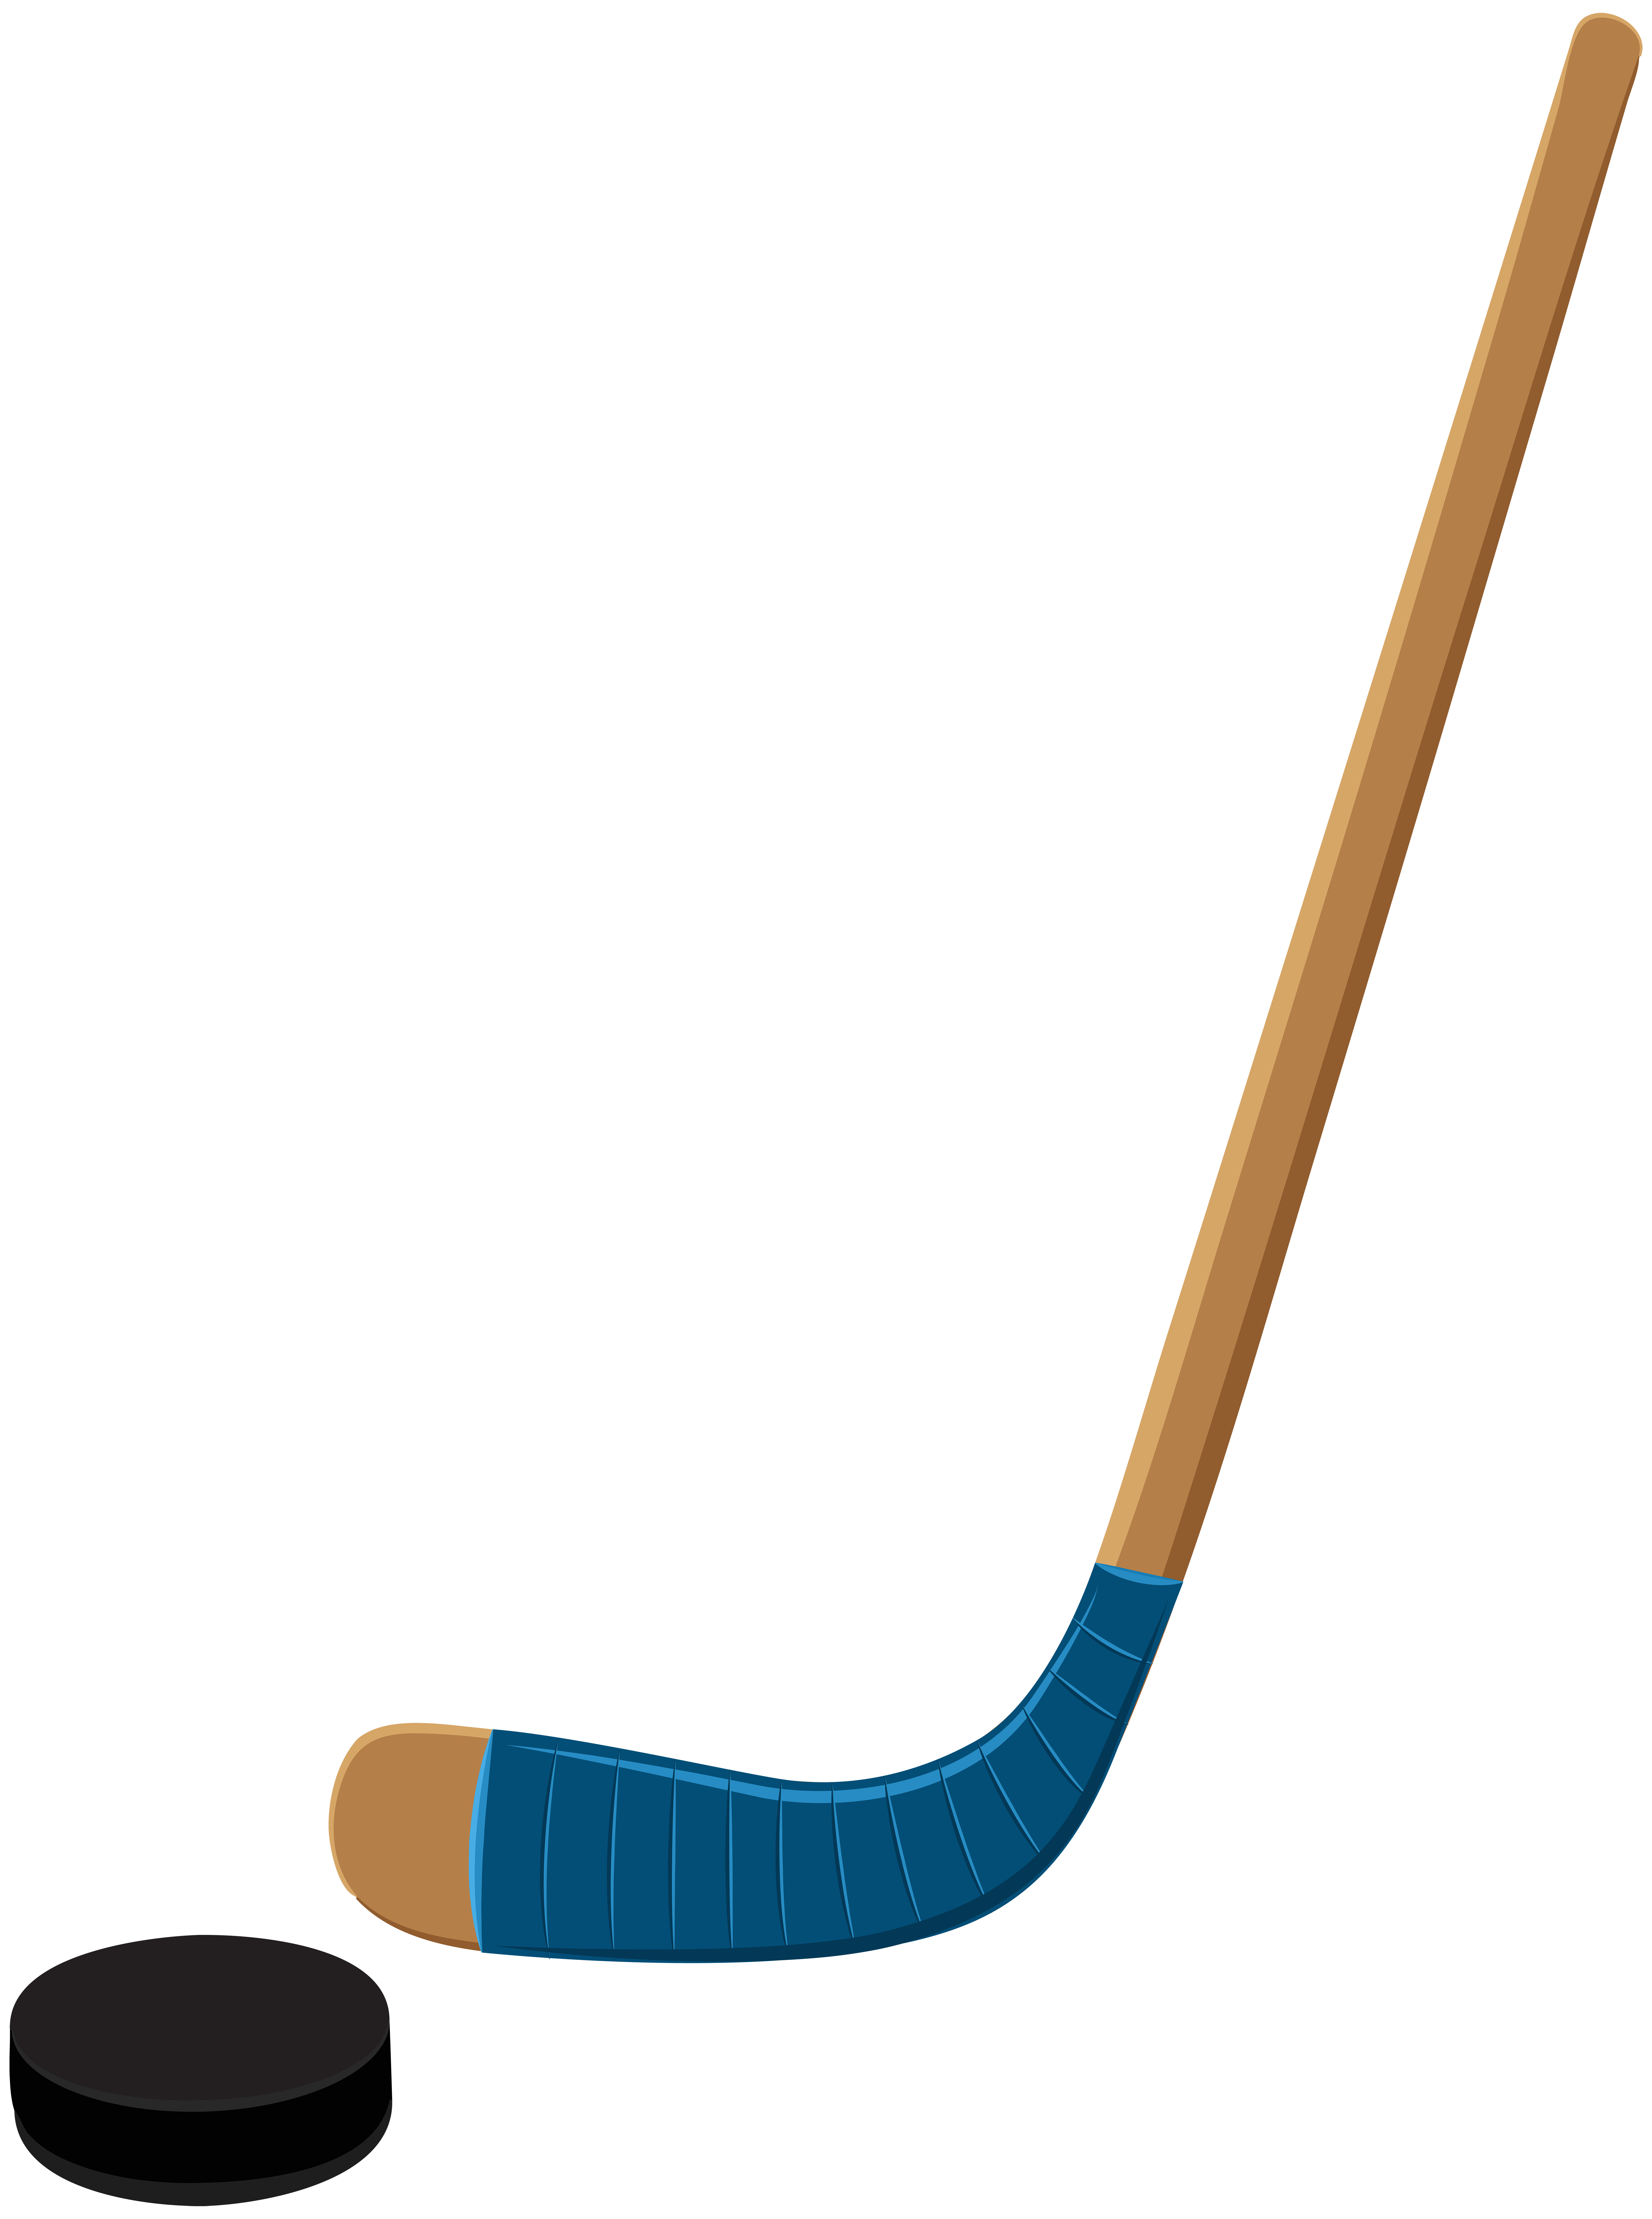 Hockey puck and stick png. Clip art image gallery